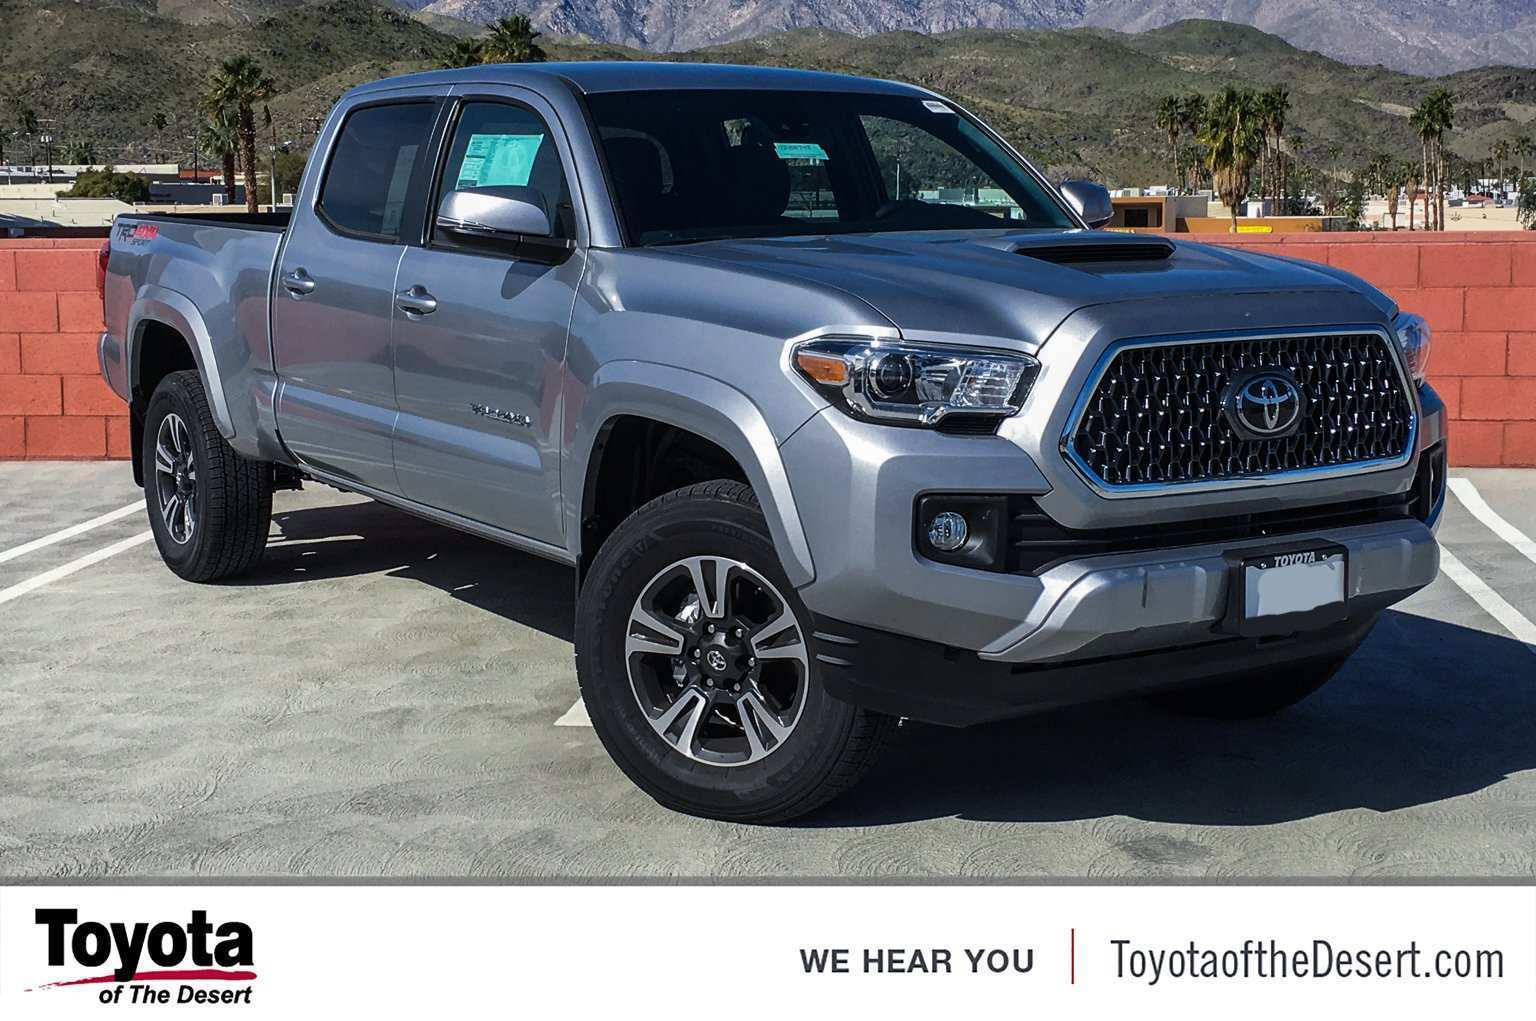 69 All New 2019 Toyota Tacoma New Review